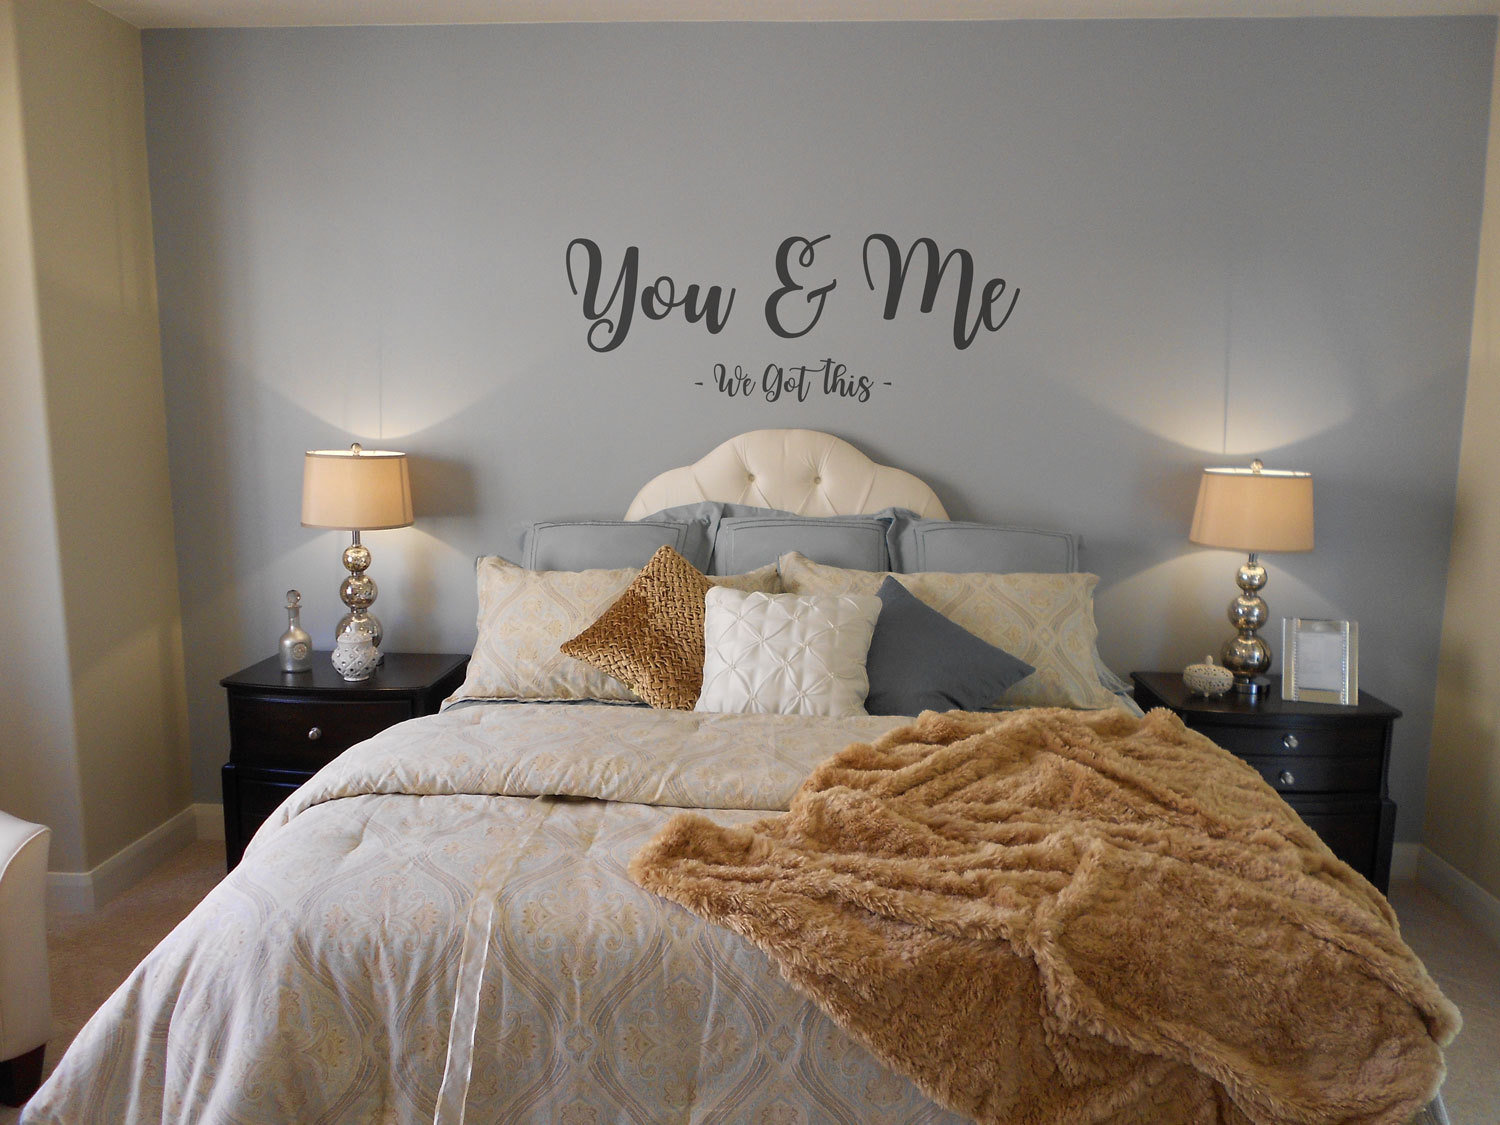 You & Me wall decal - we got this